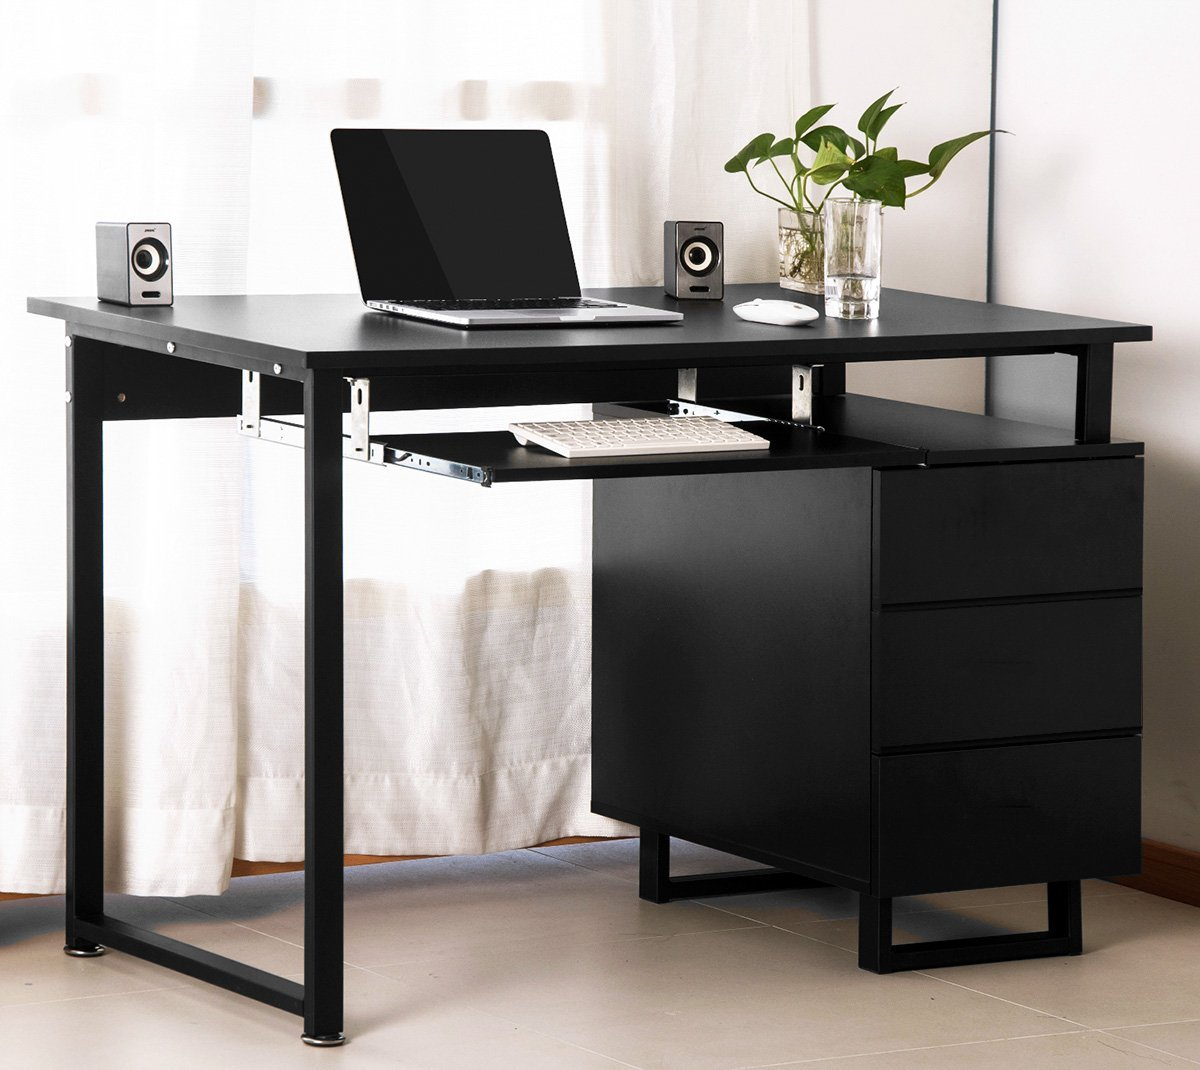 Merax Modern Simple Design Computer Desk Table Workstation with Cabinet and Drawers for Home & Office (Black and Espresso)